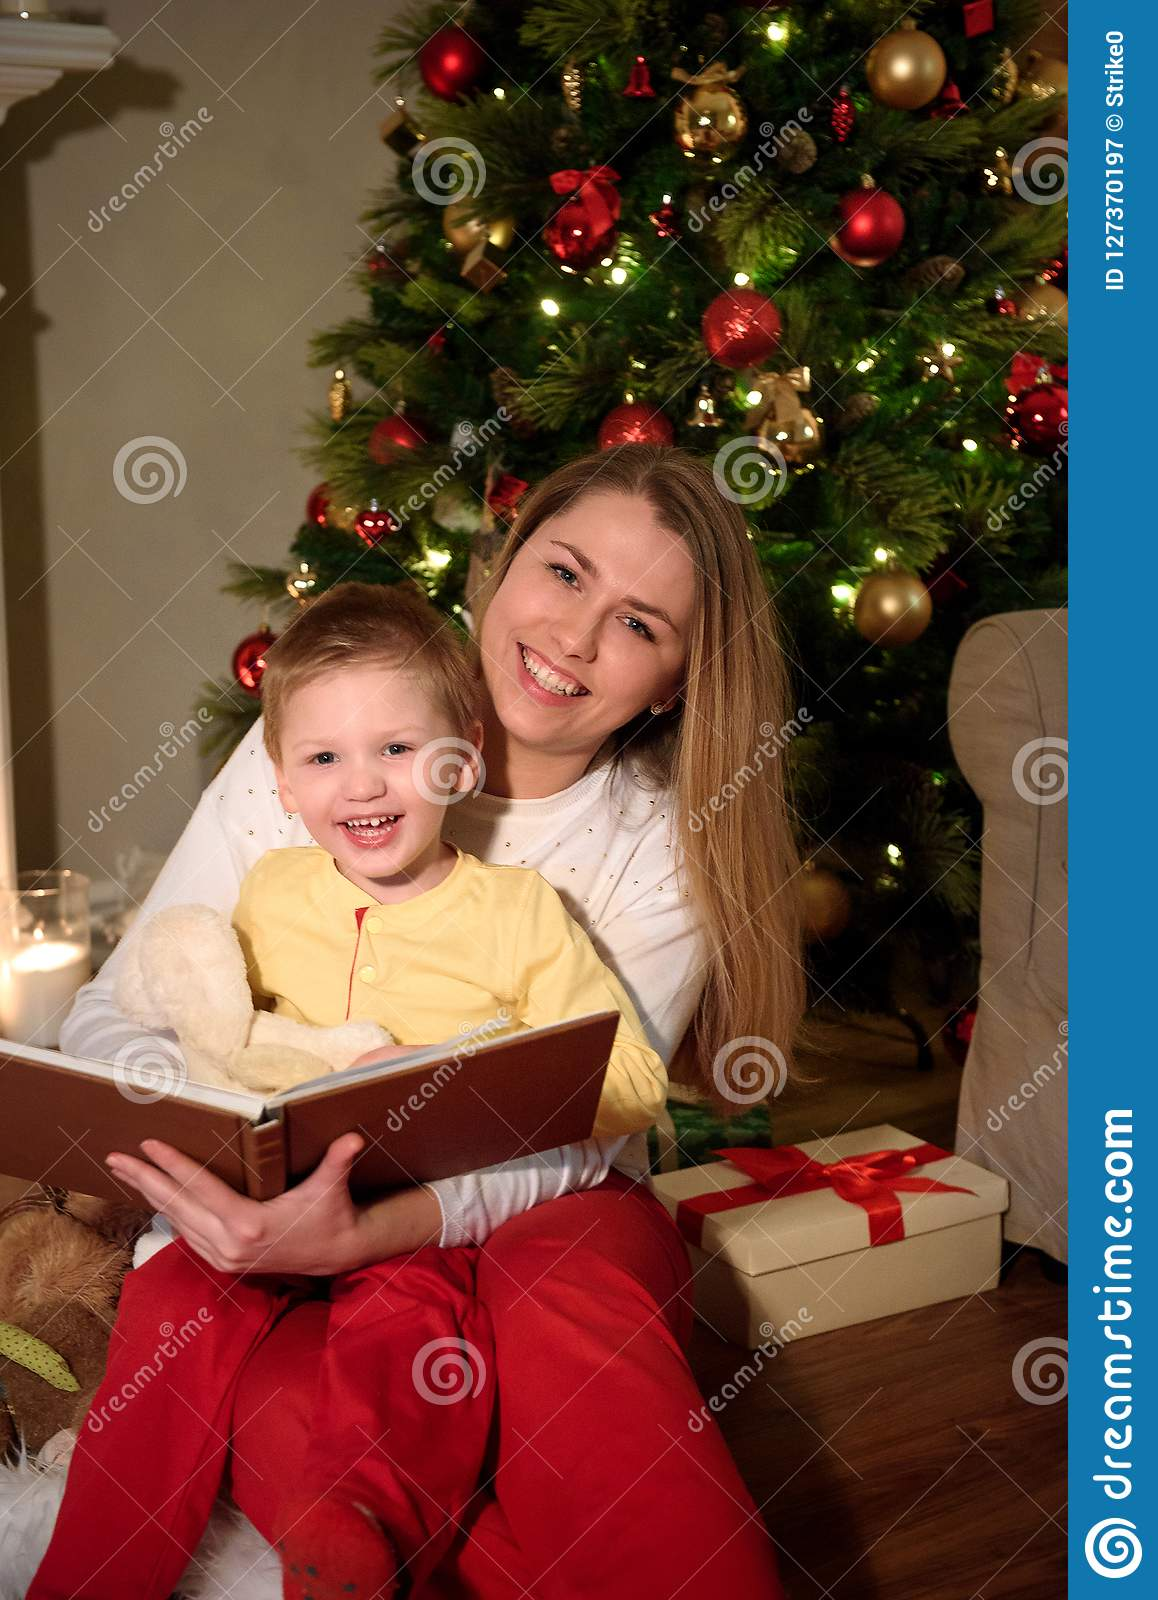 Boy and his mom reading a book together laughing